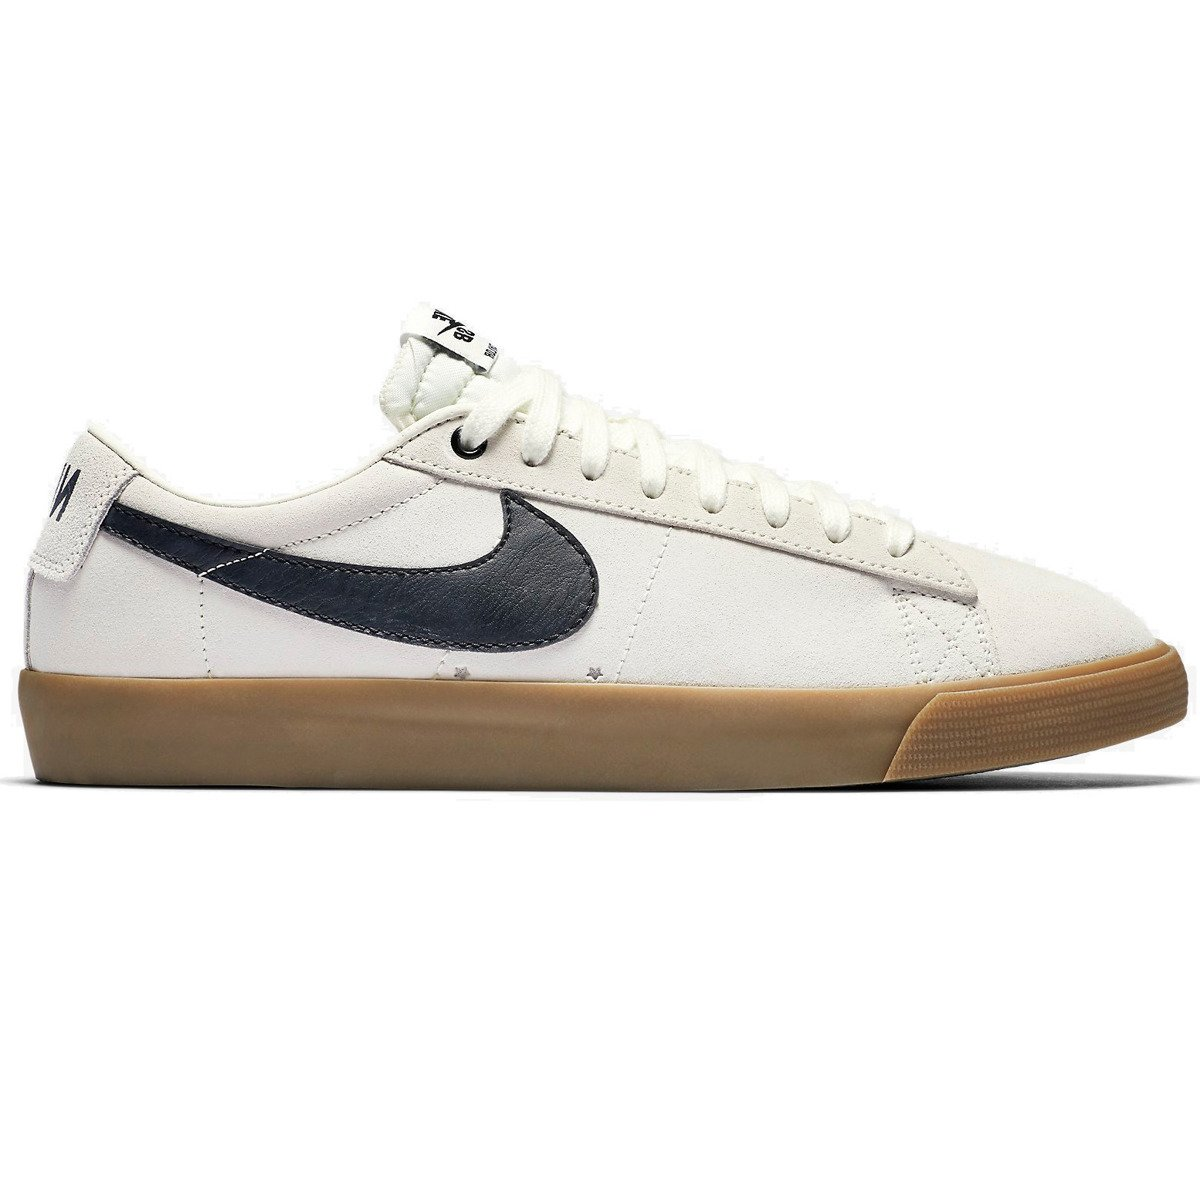 check out 5c3c2 e9e4b Buty Nike SB Blazer Low GT Ivory black-gum Light Brown white   Shoes   Nike  SB SALE   Sale 50% -70%   Shoes Brands   Nike SB Buty   Nike SB   Nike Zima  2016 ...